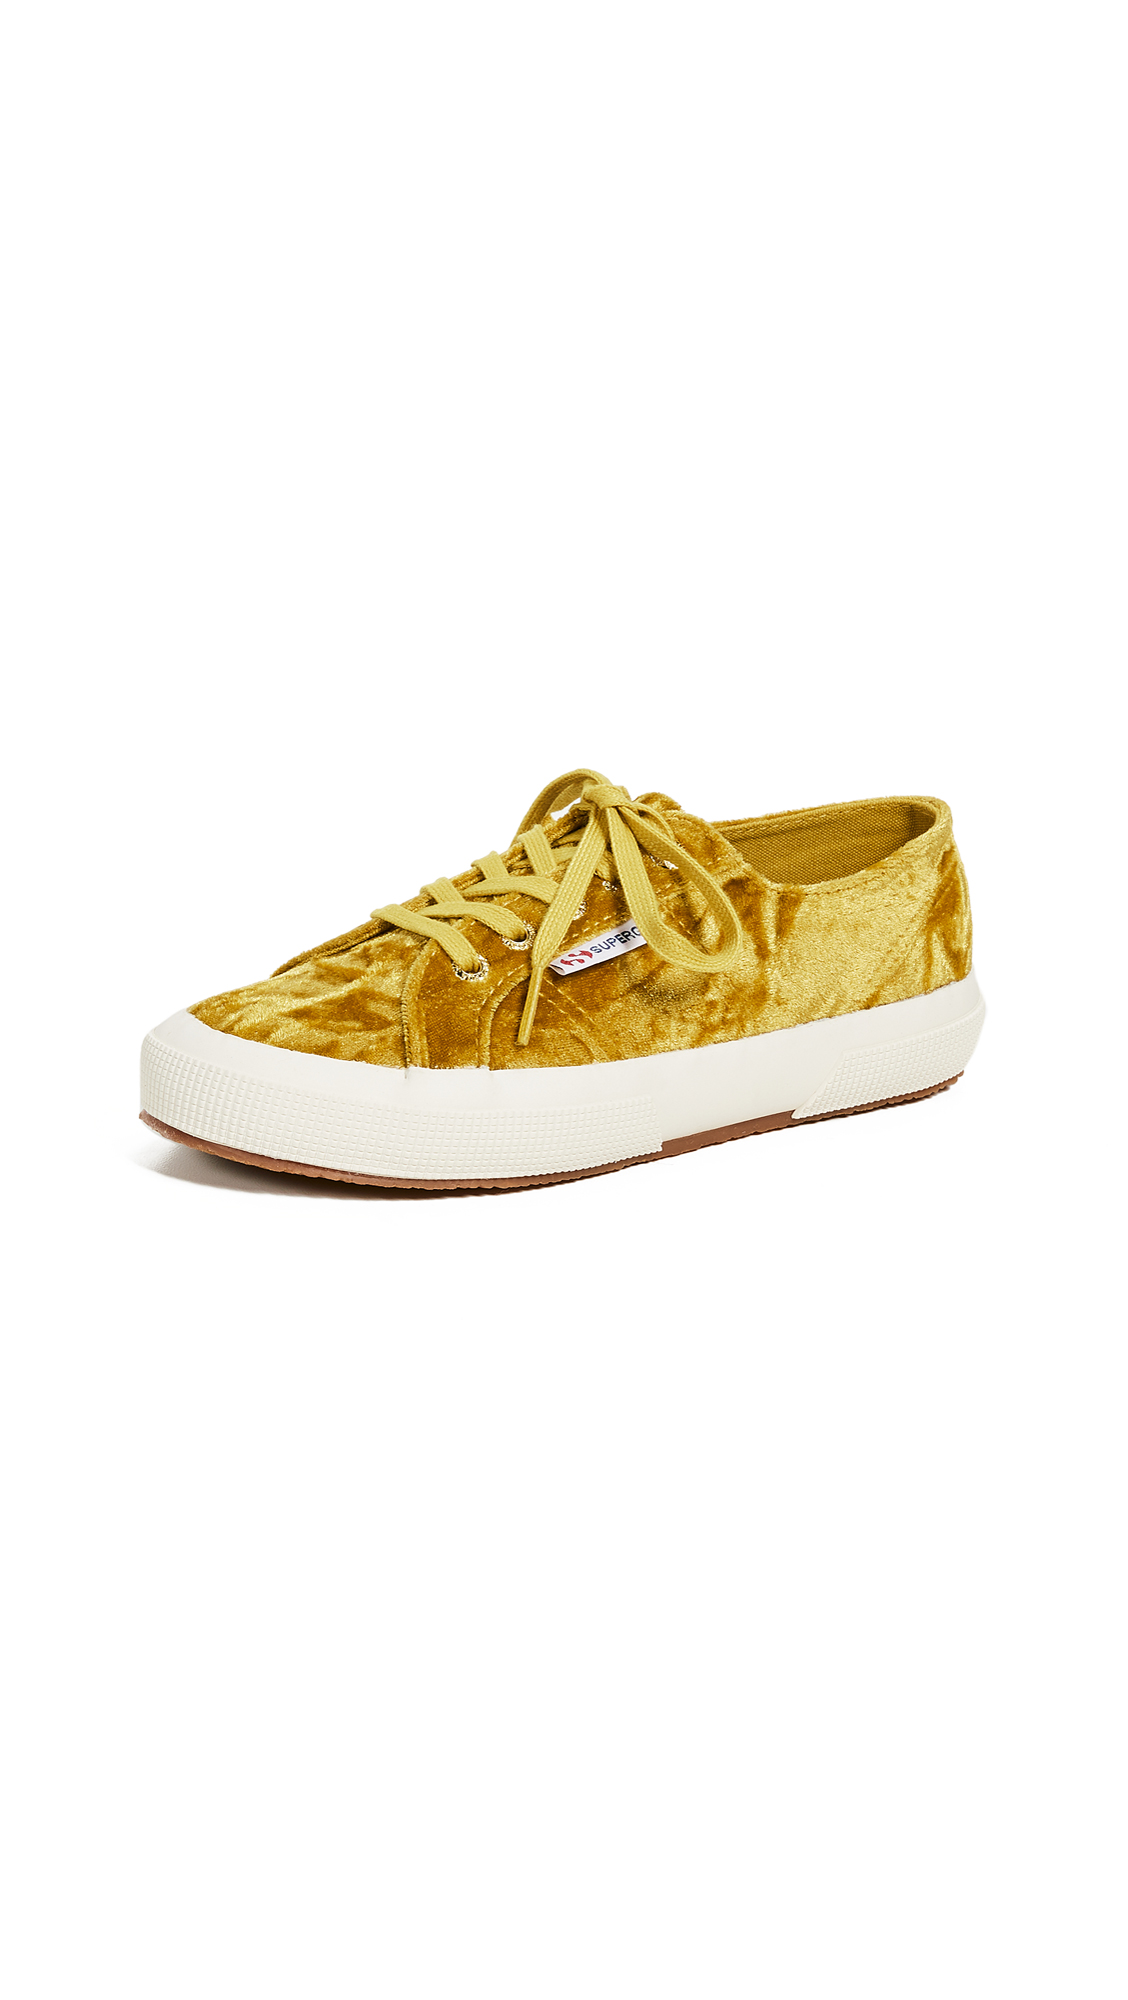 Superga 2750 Crushed Velvet Lace Up Sneakers - Mustard